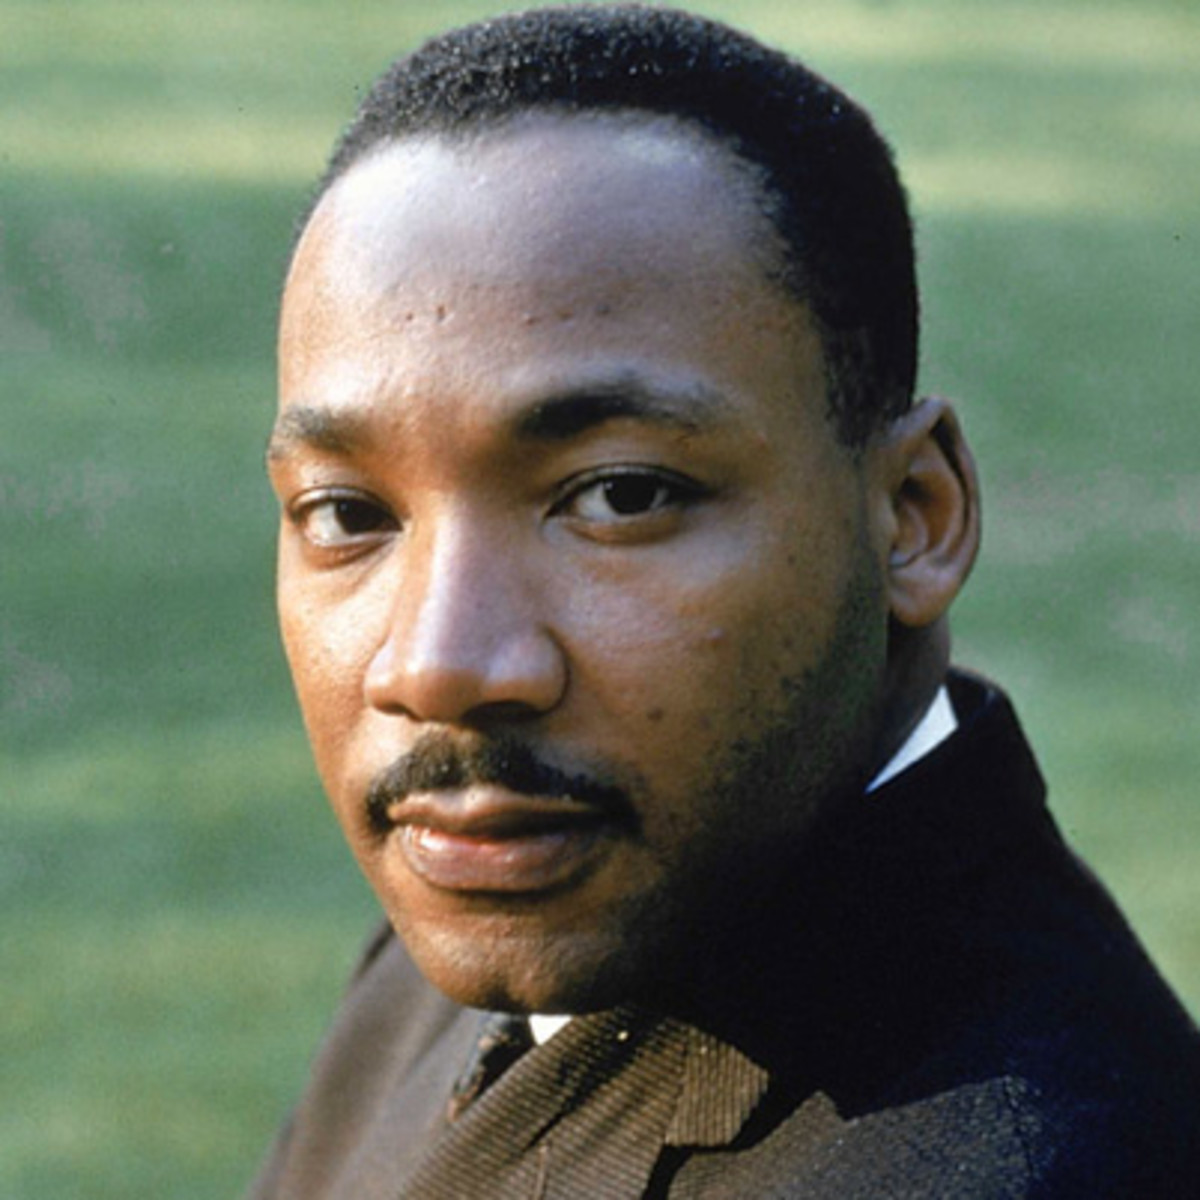 IN MEMORIAM: J. Michael Dolan Forwards Note From James Taylor on Martin Luther King, Jr.